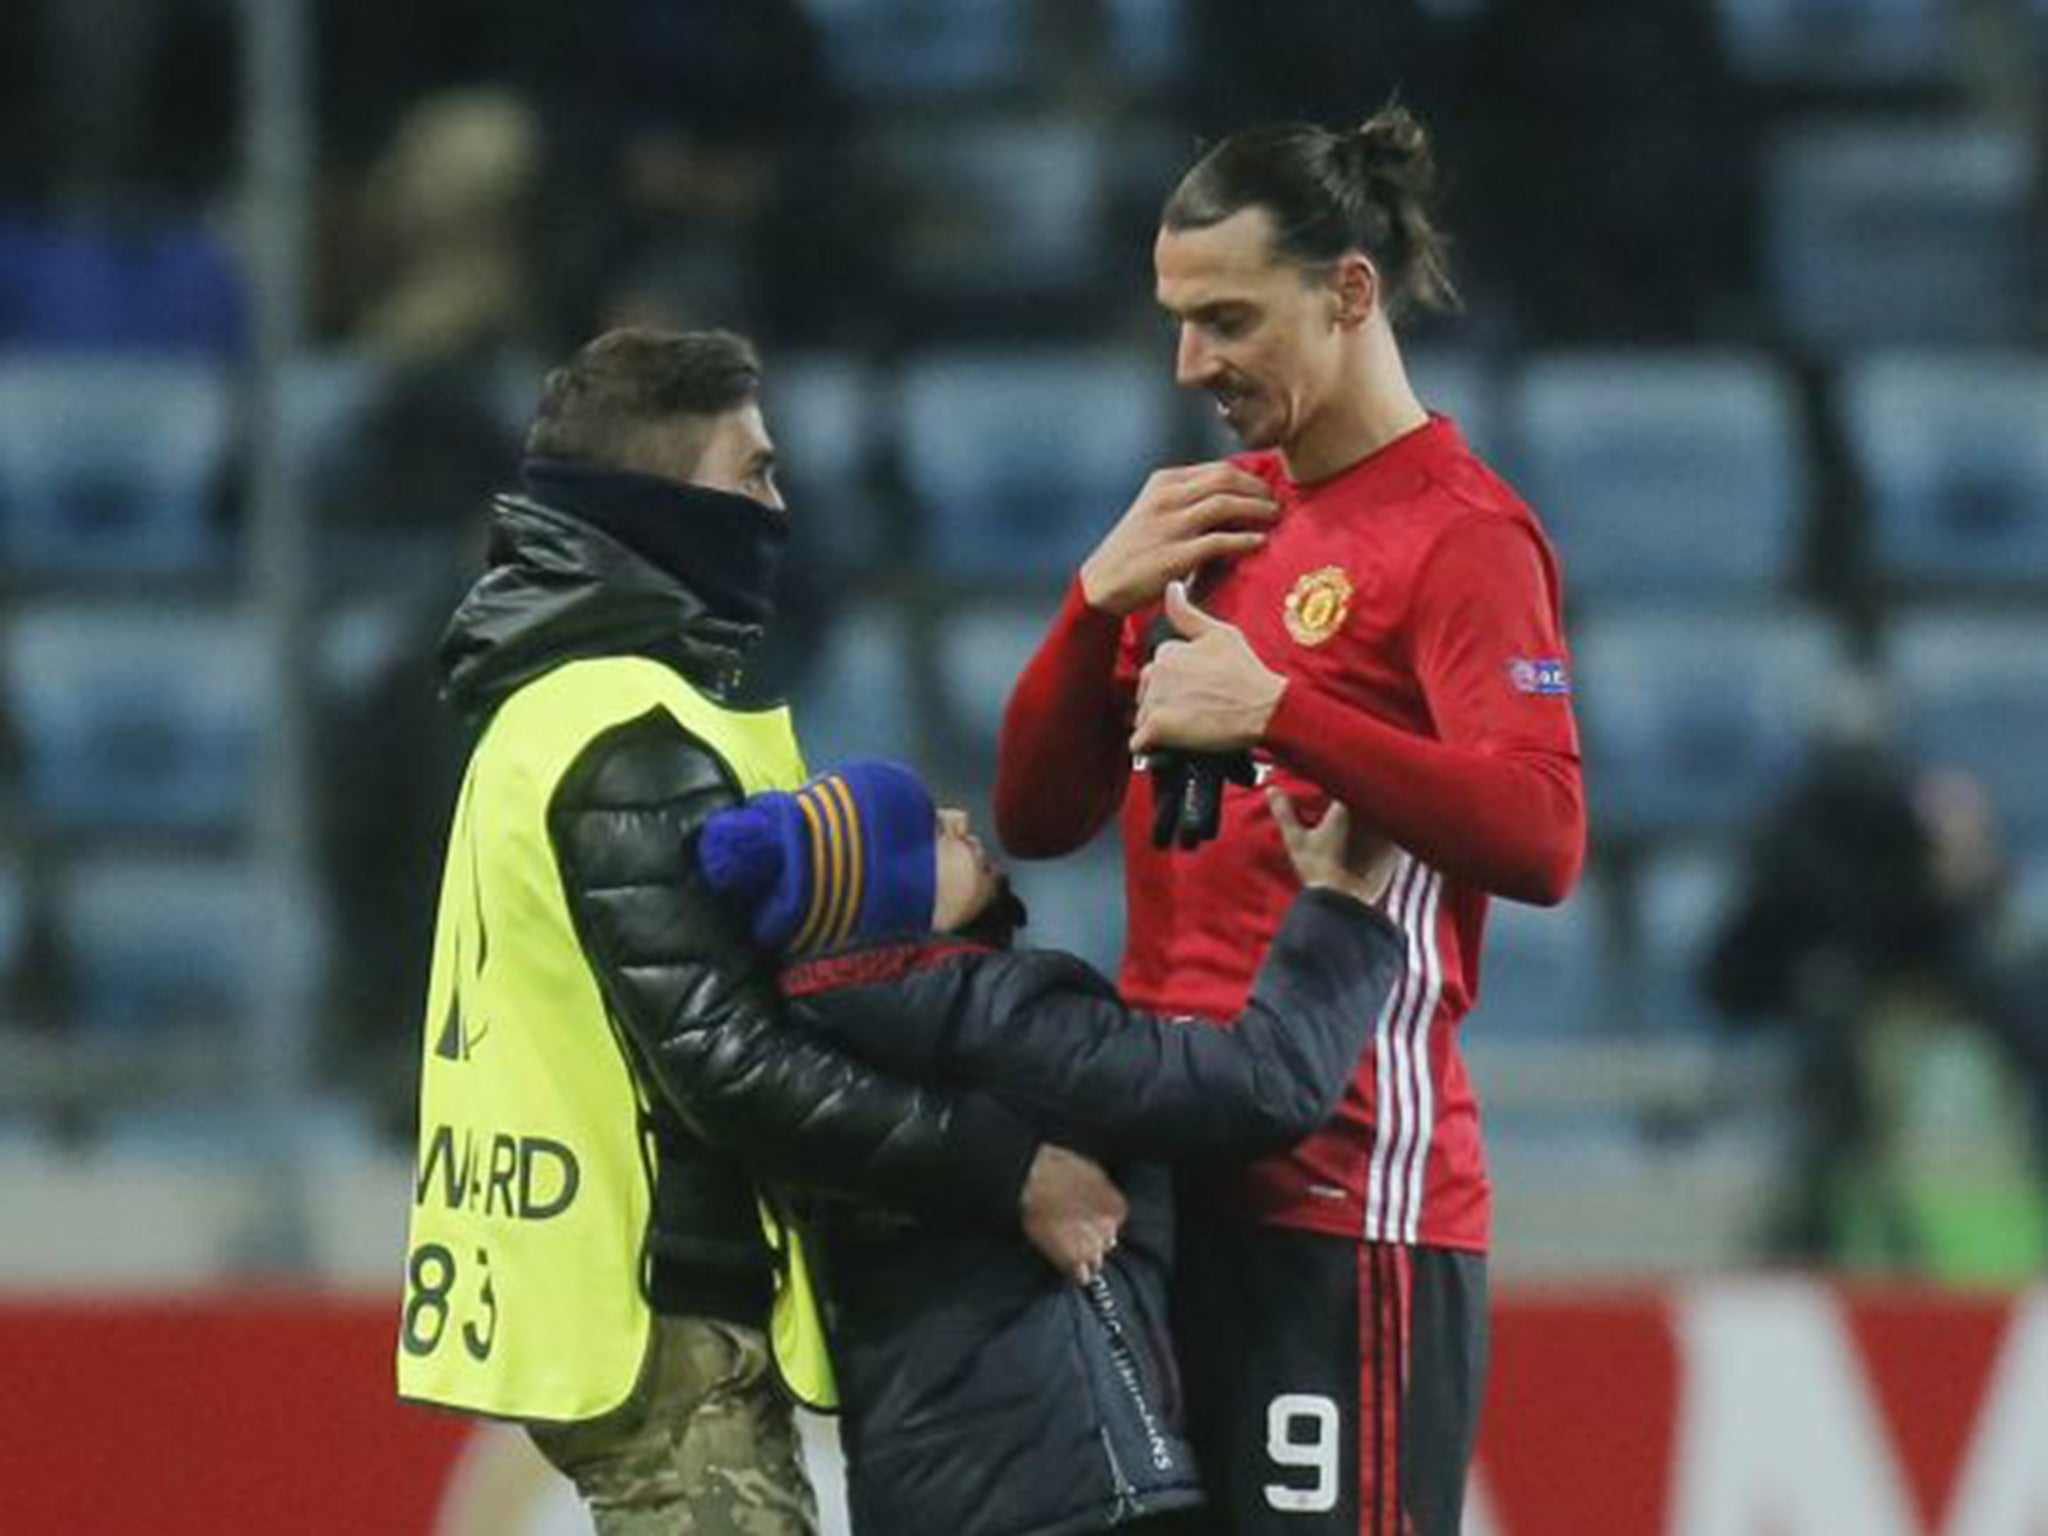 Manchester United: The Zlatan Ibrahimovic gesture to a young